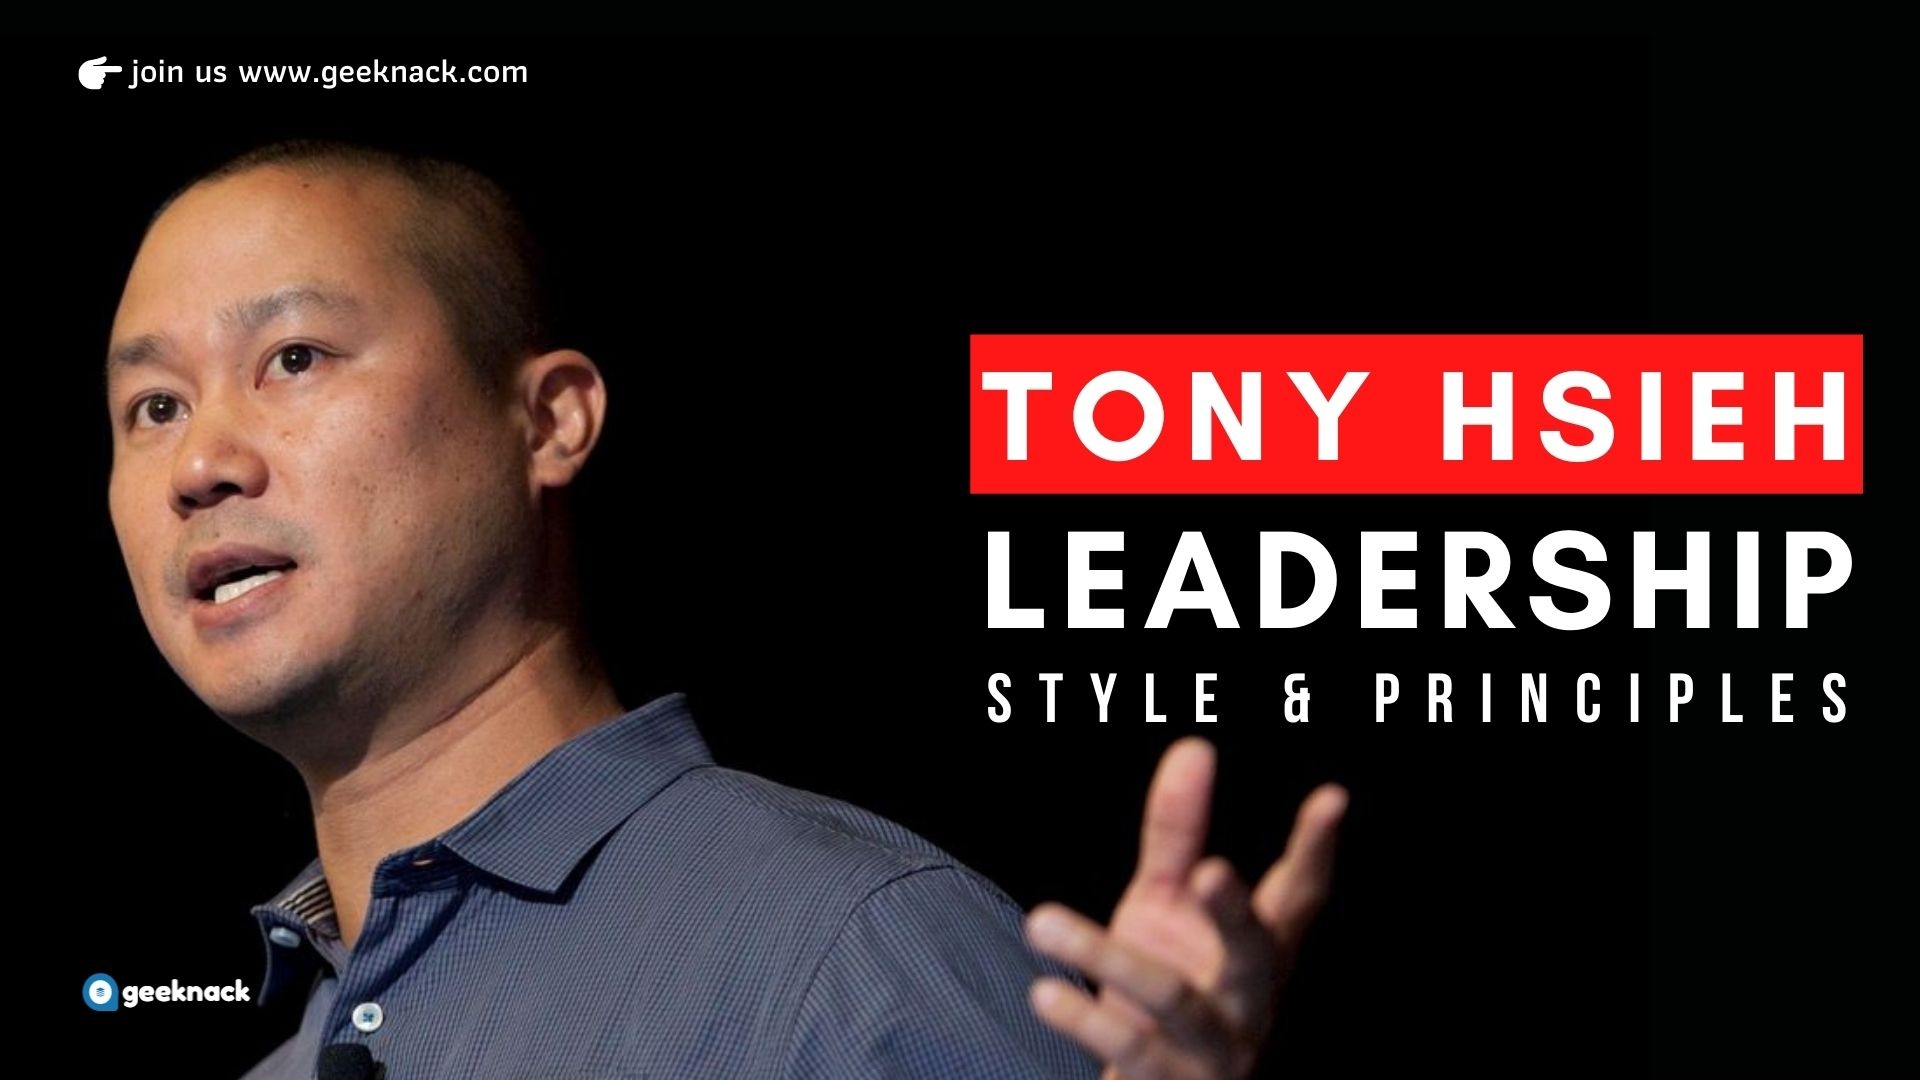 Tony Hsieh - Leadership Style & Principles